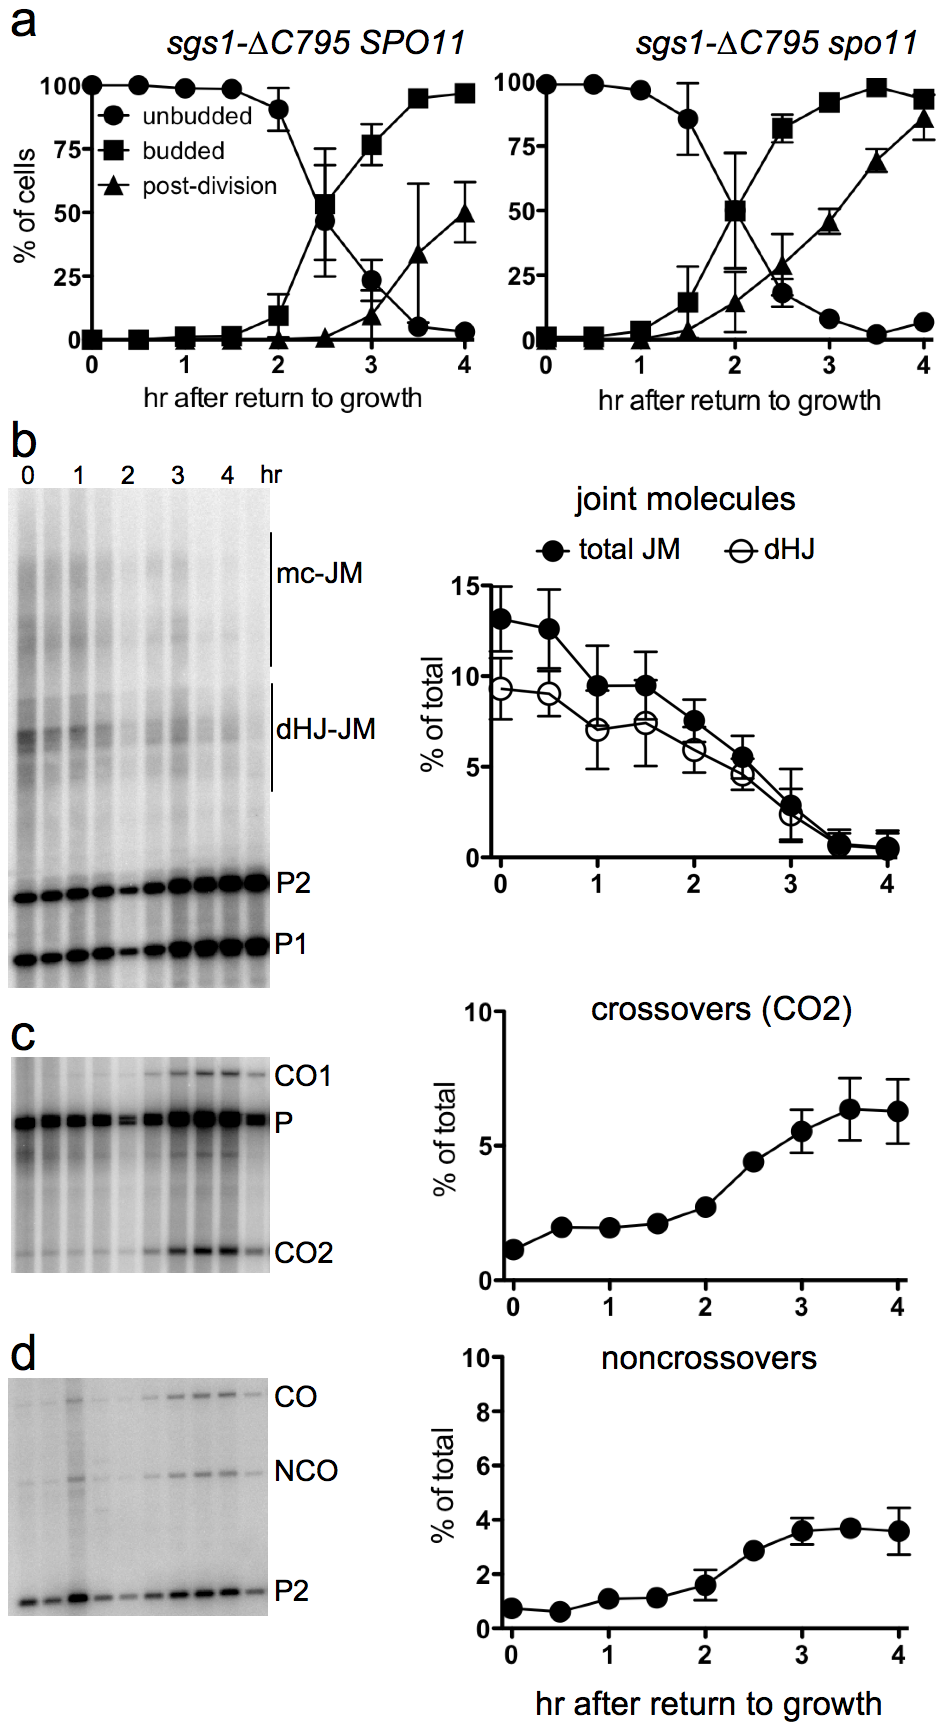 Delayed JM resolution and increased CO formation after RTG in the absence of the Sgs1 helicase.